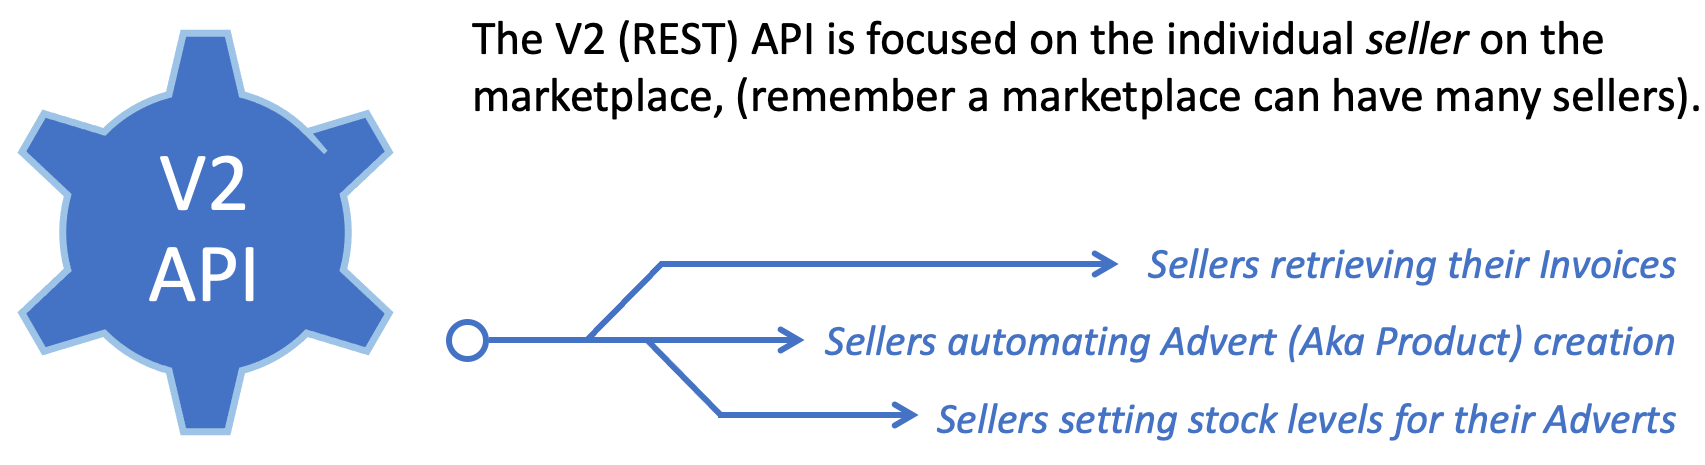 The V2 (REST) API is focused on the individual seller on the marketplace, (remember a marketplace can have many sellers). Some of the common use-cases for this API are: sellers retrieving their invoices, sellers automating advert creation and sellers setting stock levels for their adverts.